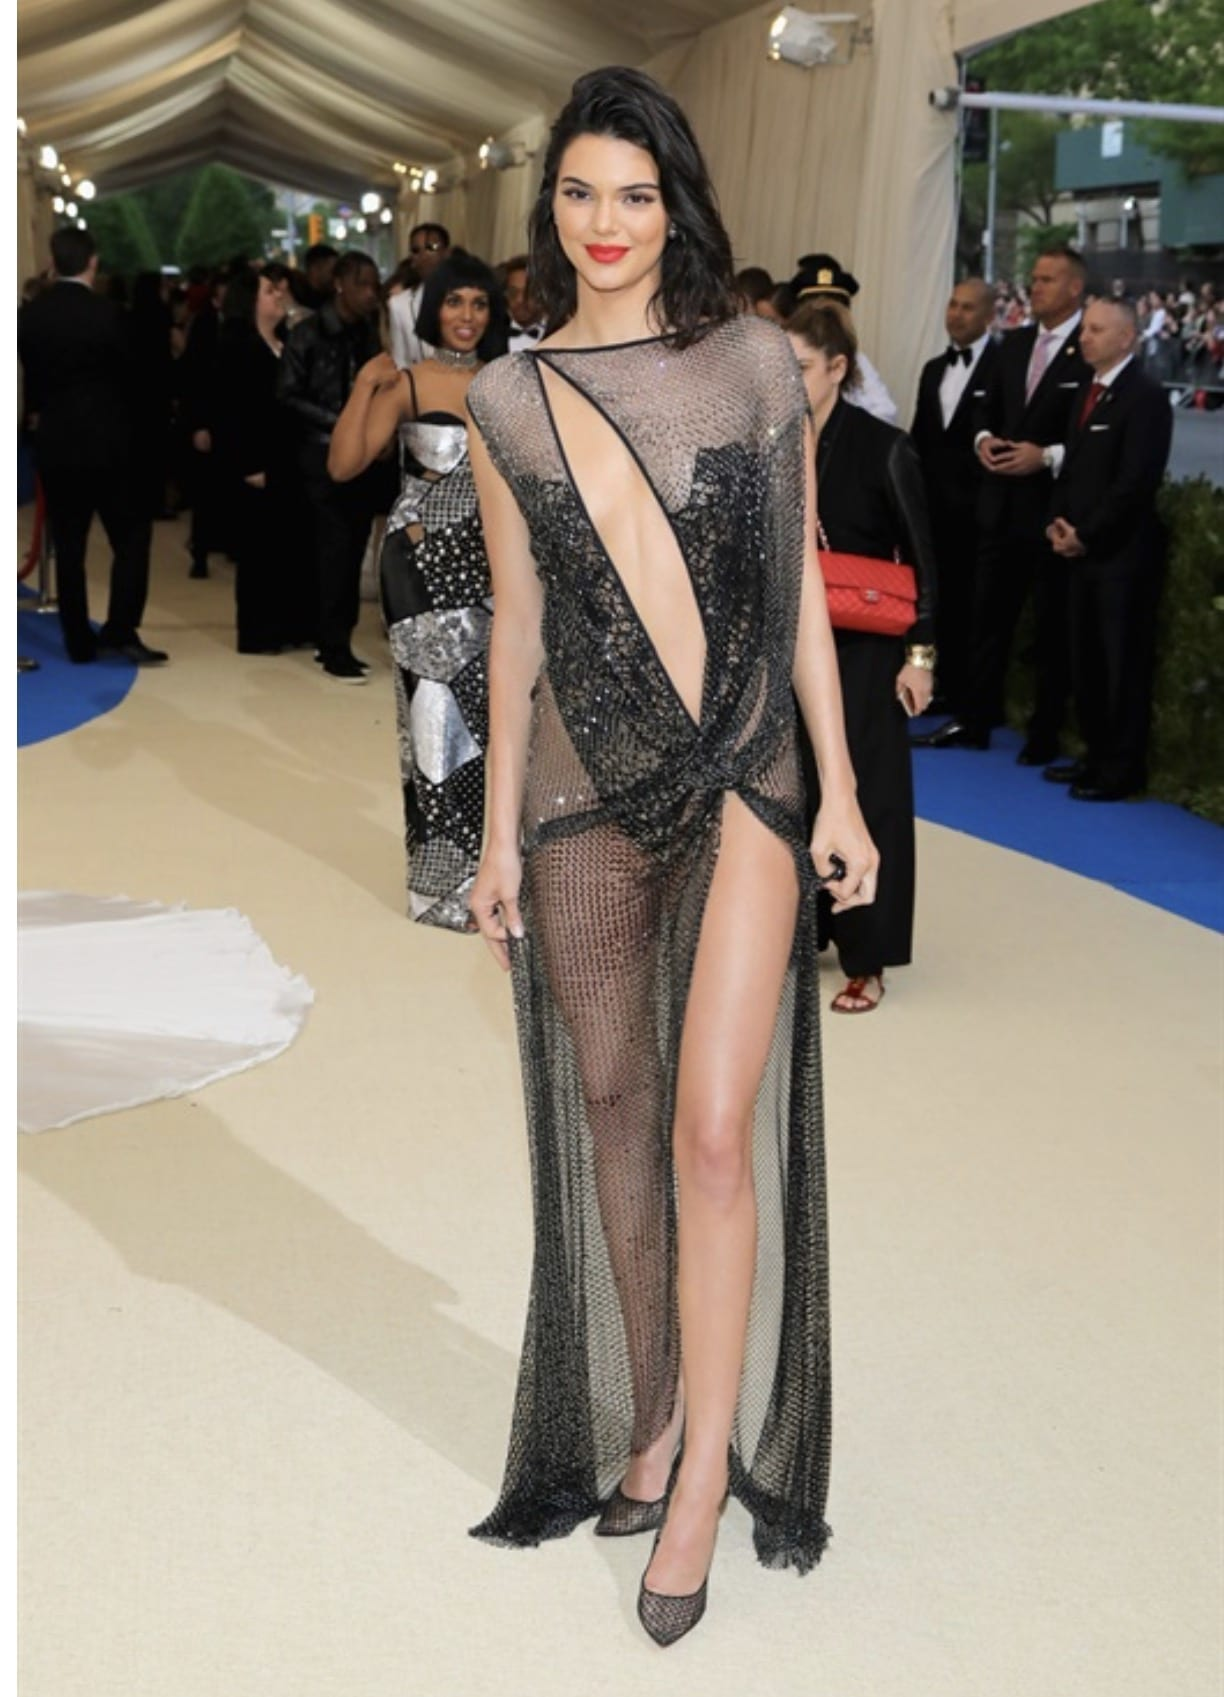 Met Gala 2017, bella hadid met gala 2017, theladycracy.it, elisa bellino, fashion blog, fashion blog 2017, fashion blogger 2017, look da red carpet, come si vestono le star sui red carpet, look mostruosi, kendall jenner